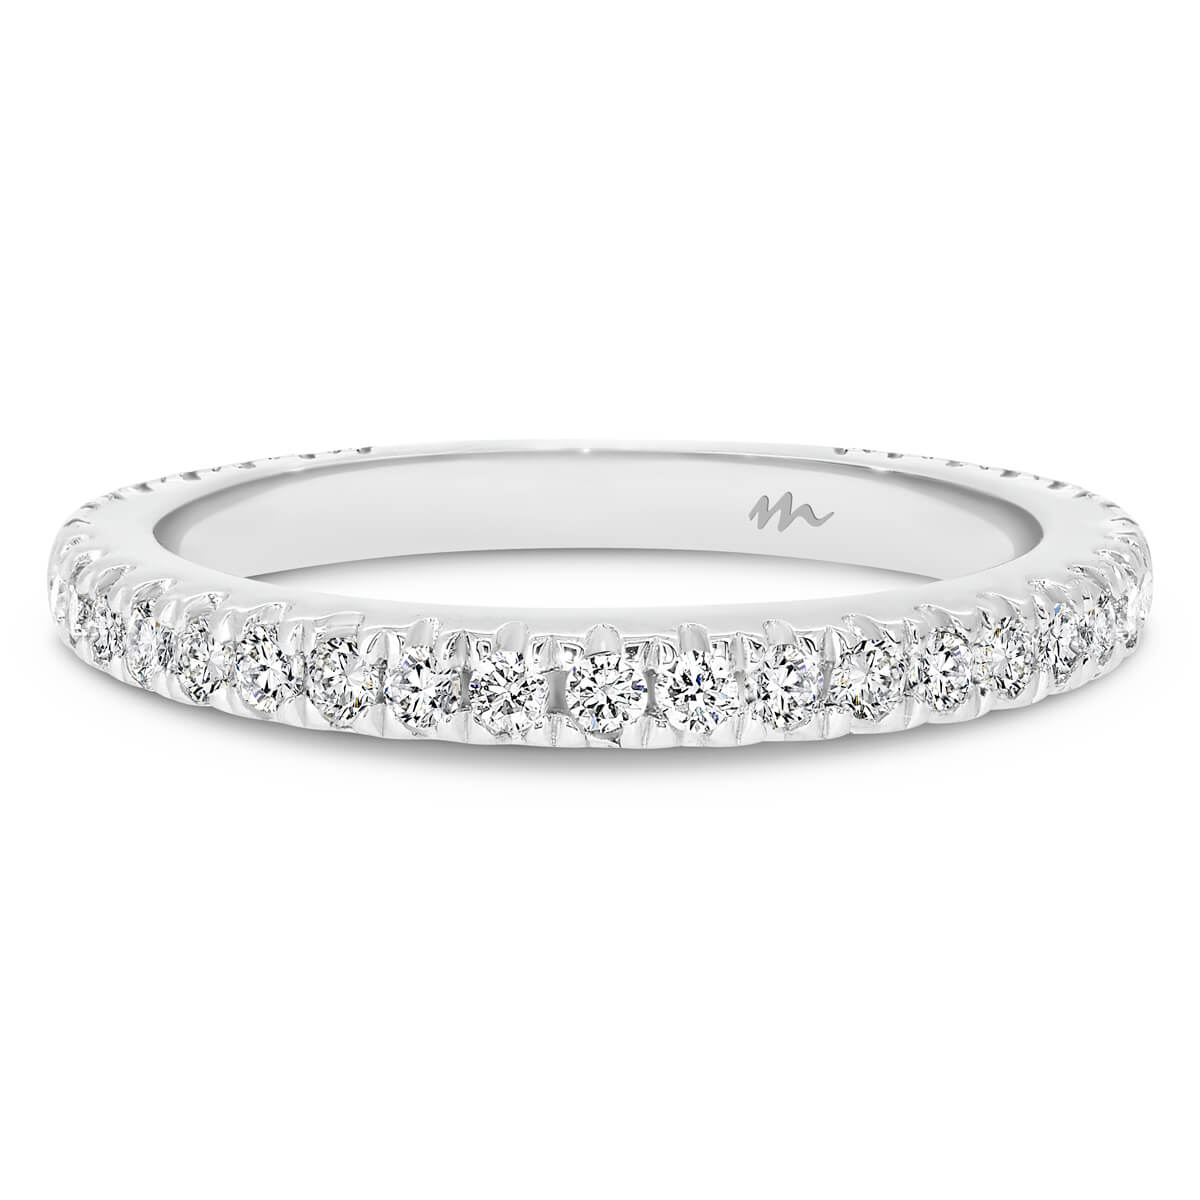 Angelica 1.5 3/4 Claw set Moissanite wedding ring